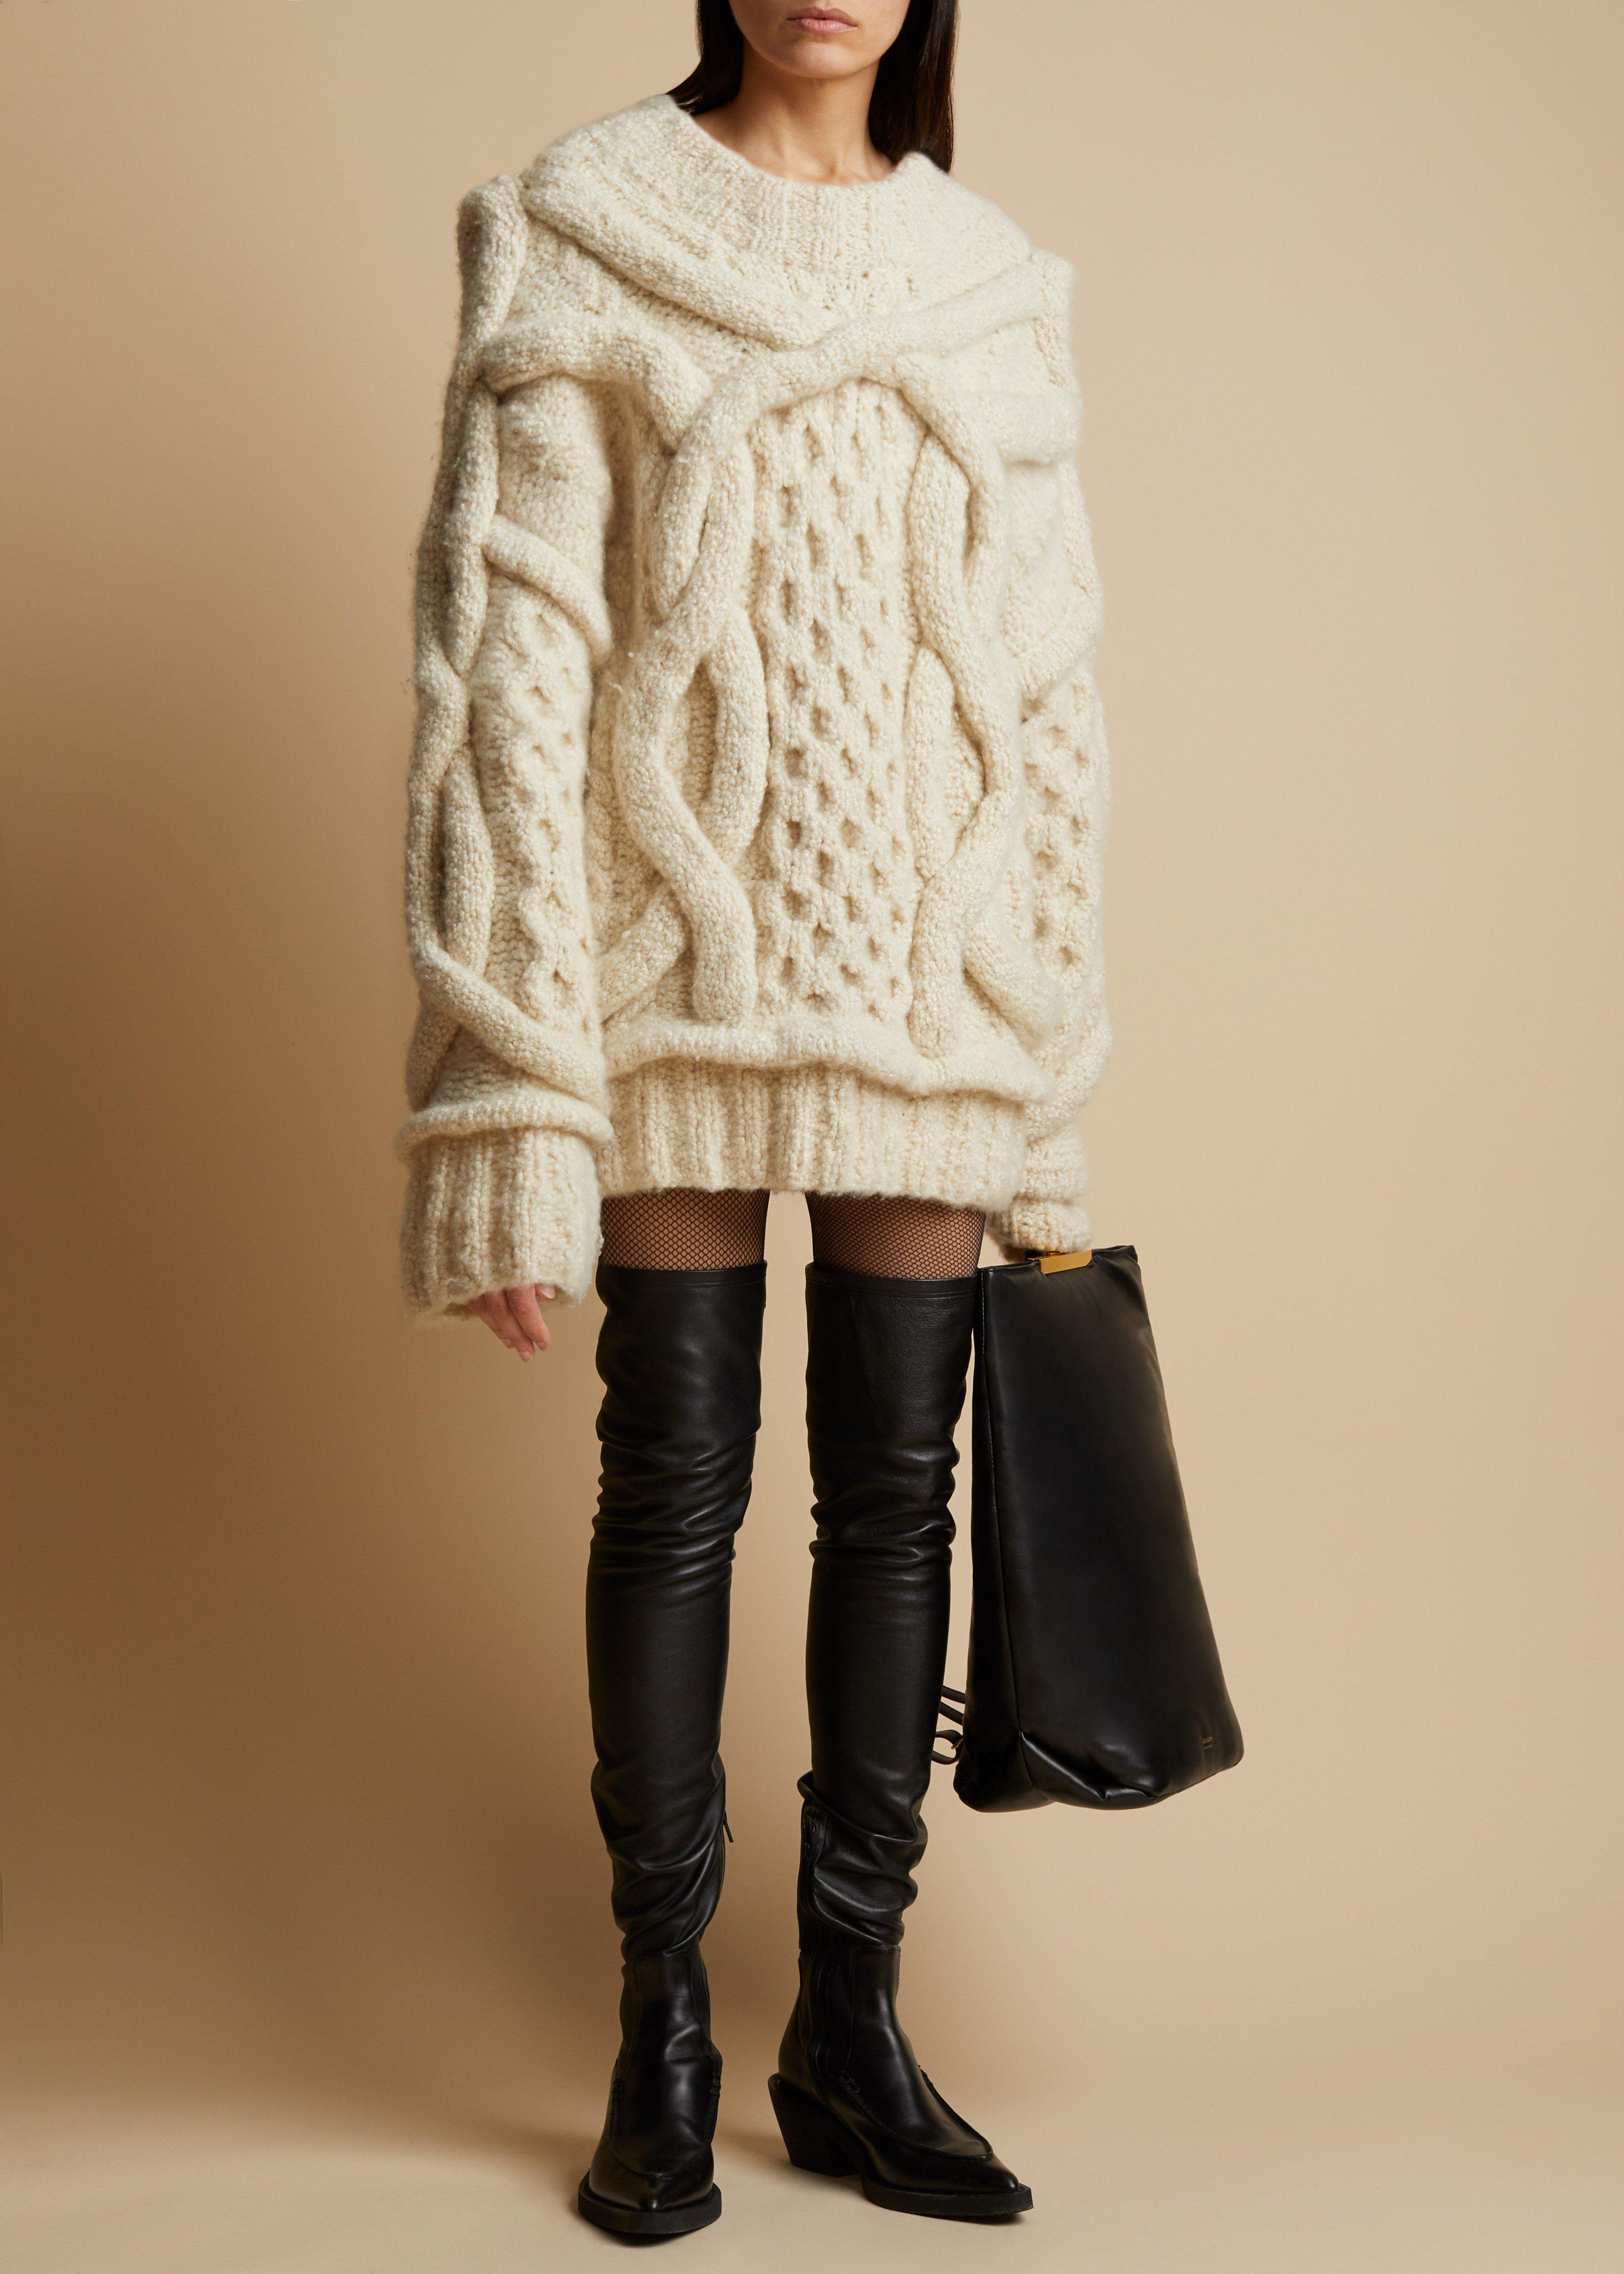 The Monet Sweater in Ivory